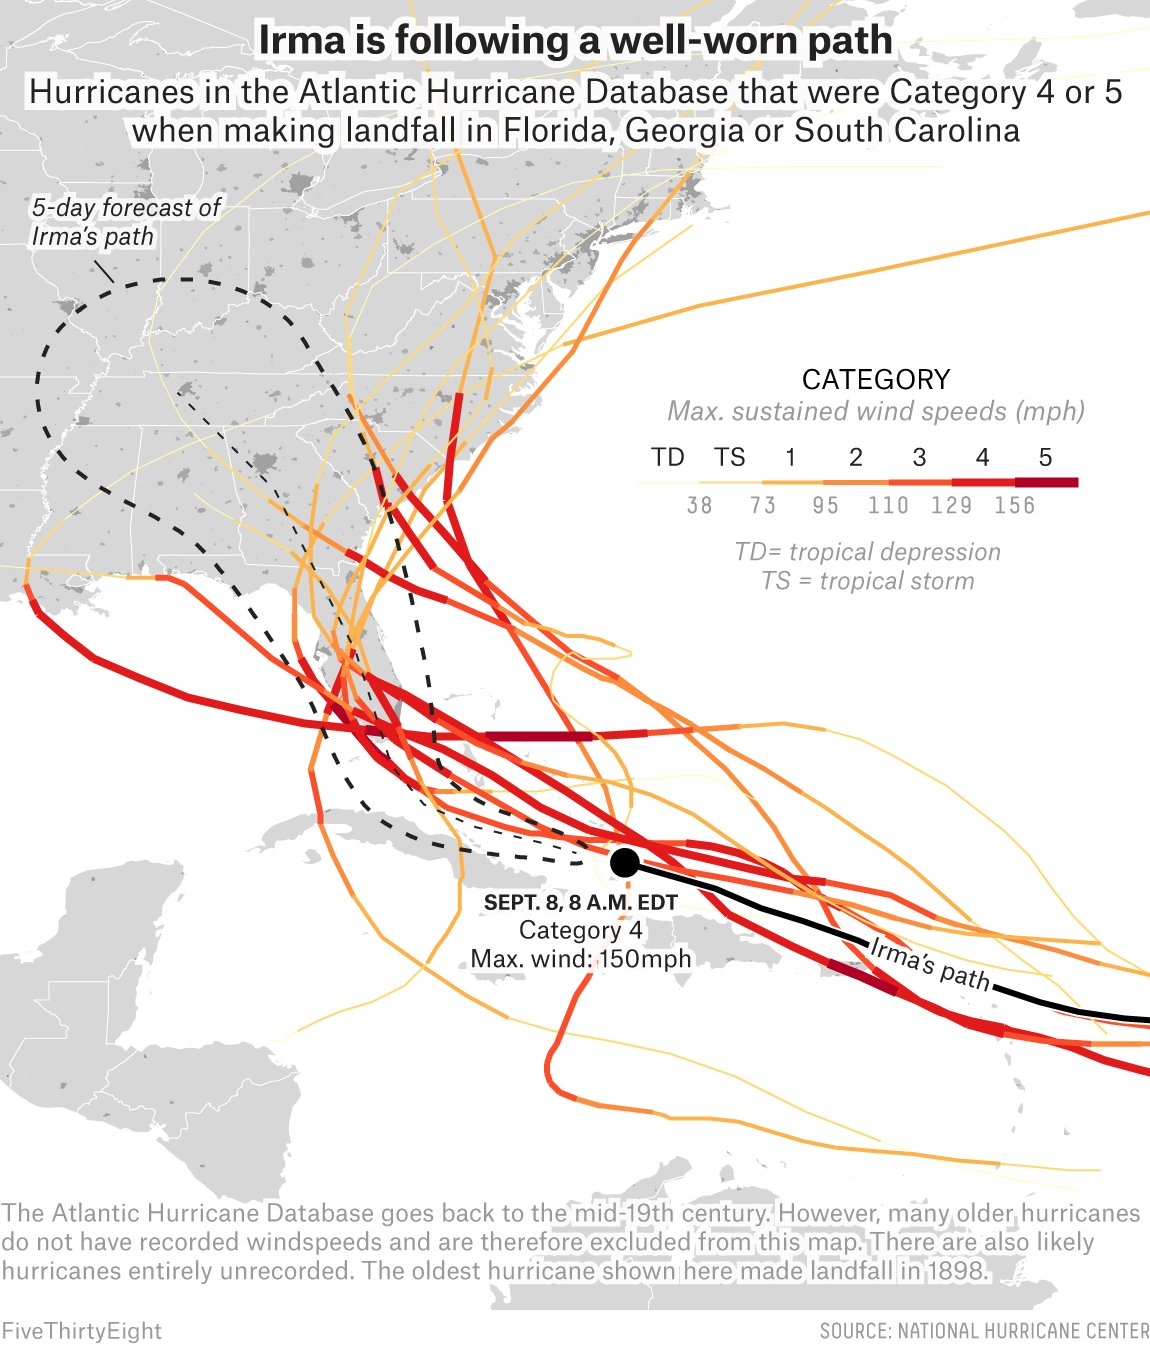 At least nine Category 4 or 5 hurricanes have made landfall in Florida since 1898. https://t.co/UCGbV0a2l8 https://t.co/fIi96t2rpp